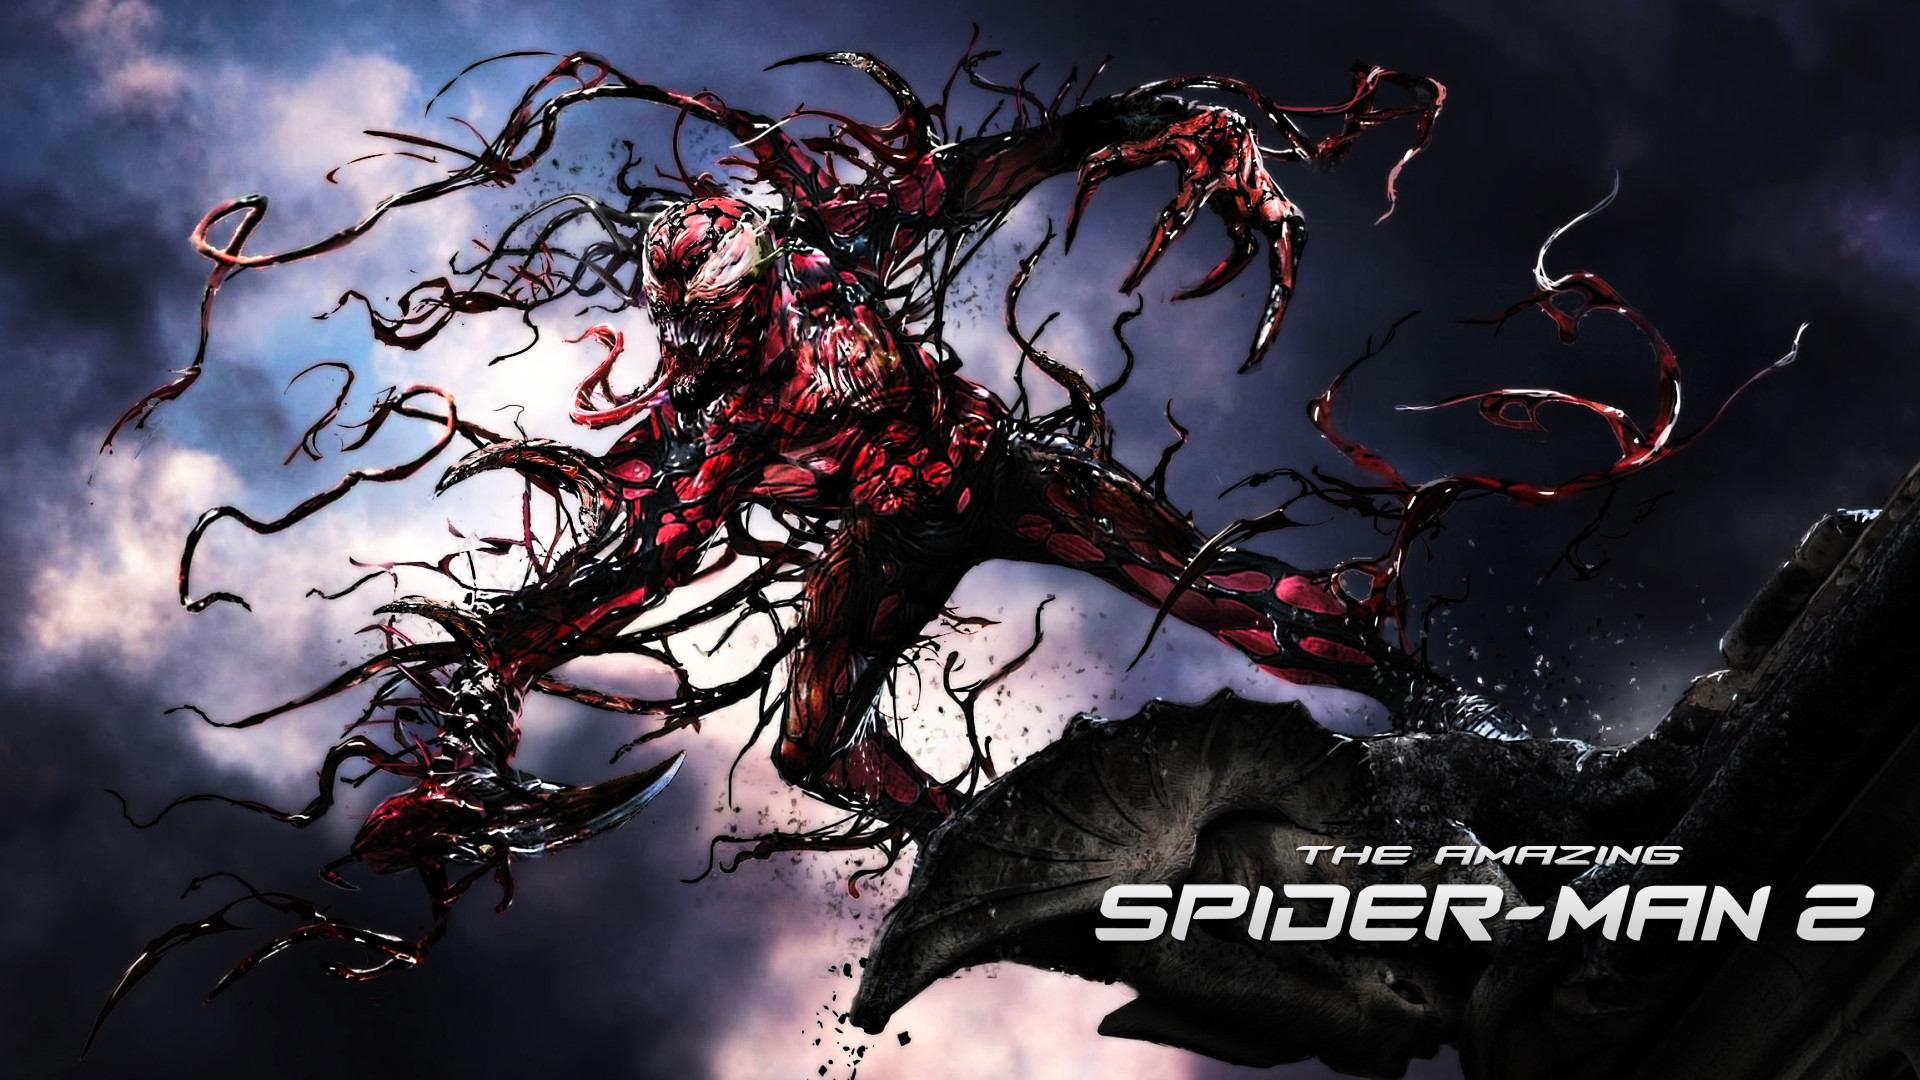 Spider-Man 4 Lizard And Carnage – wallpaper.